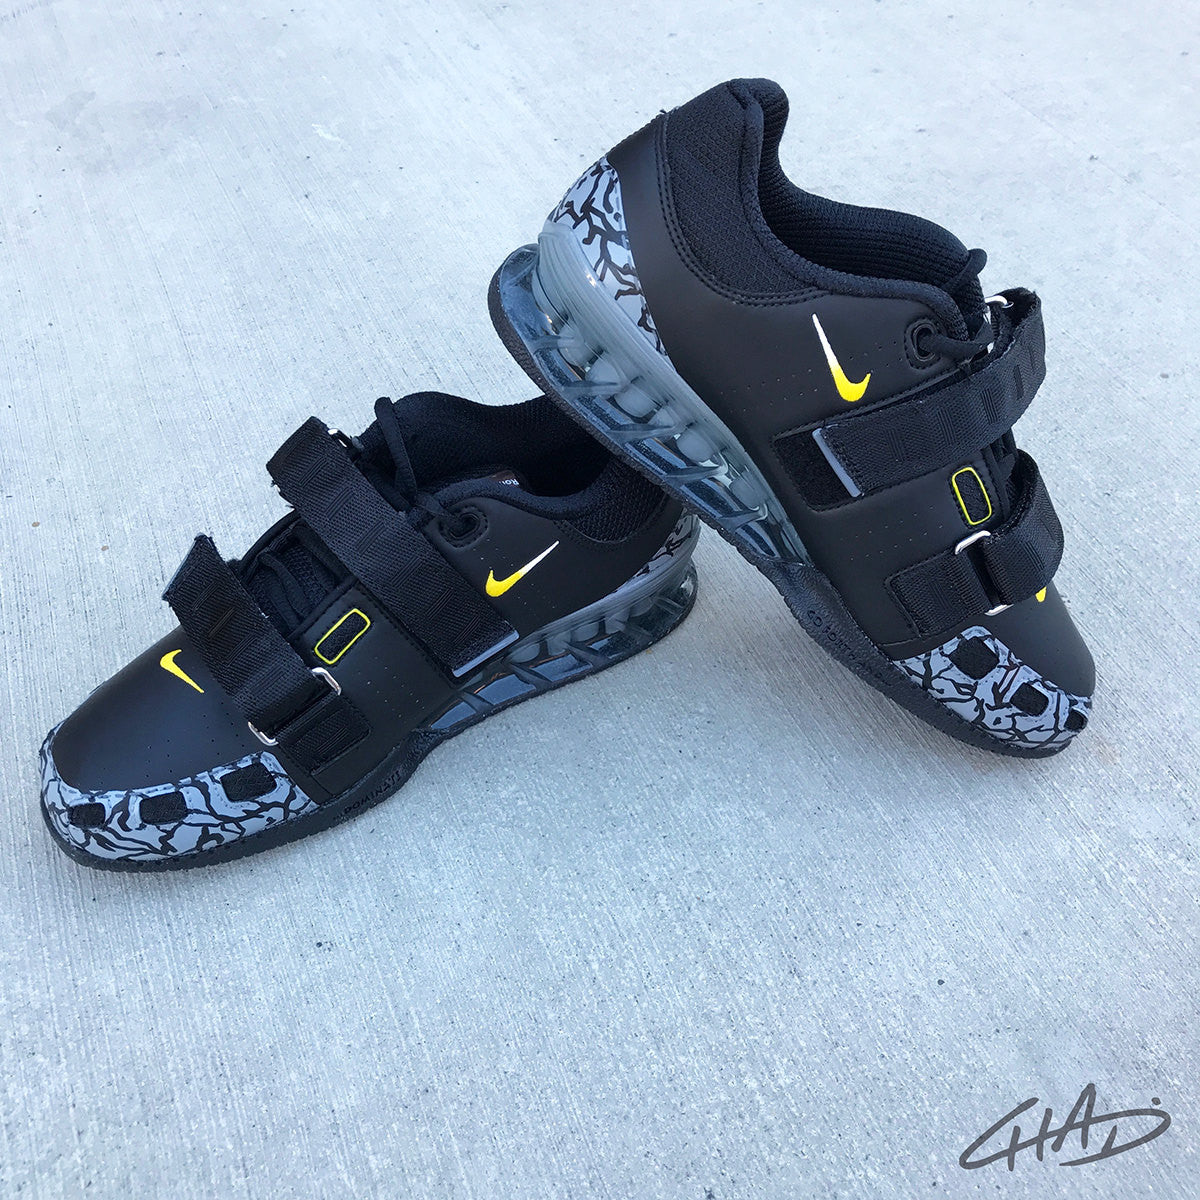 Custom Jordan inspired Yellowjacket Hand painted Nike Romaleos olympic weightlifting crossfit shoes